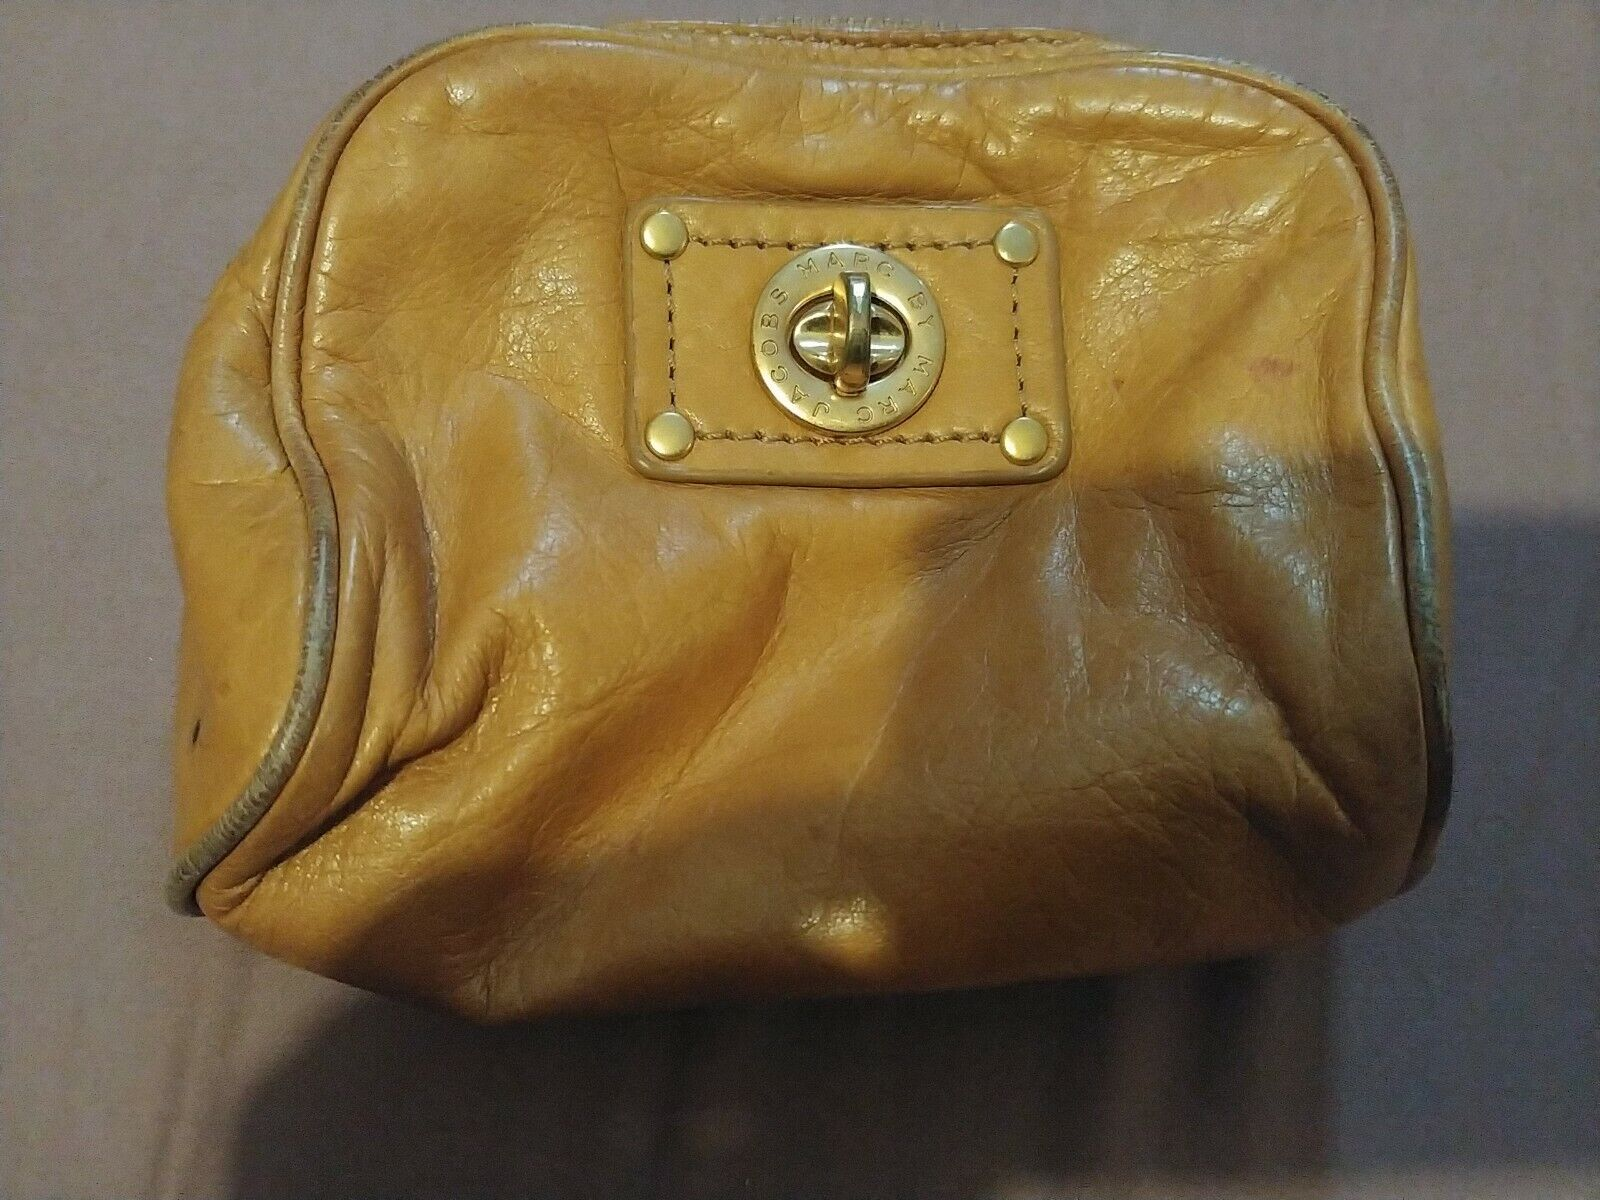 Marc Jacobs Mustard Leather Pouch Purse used